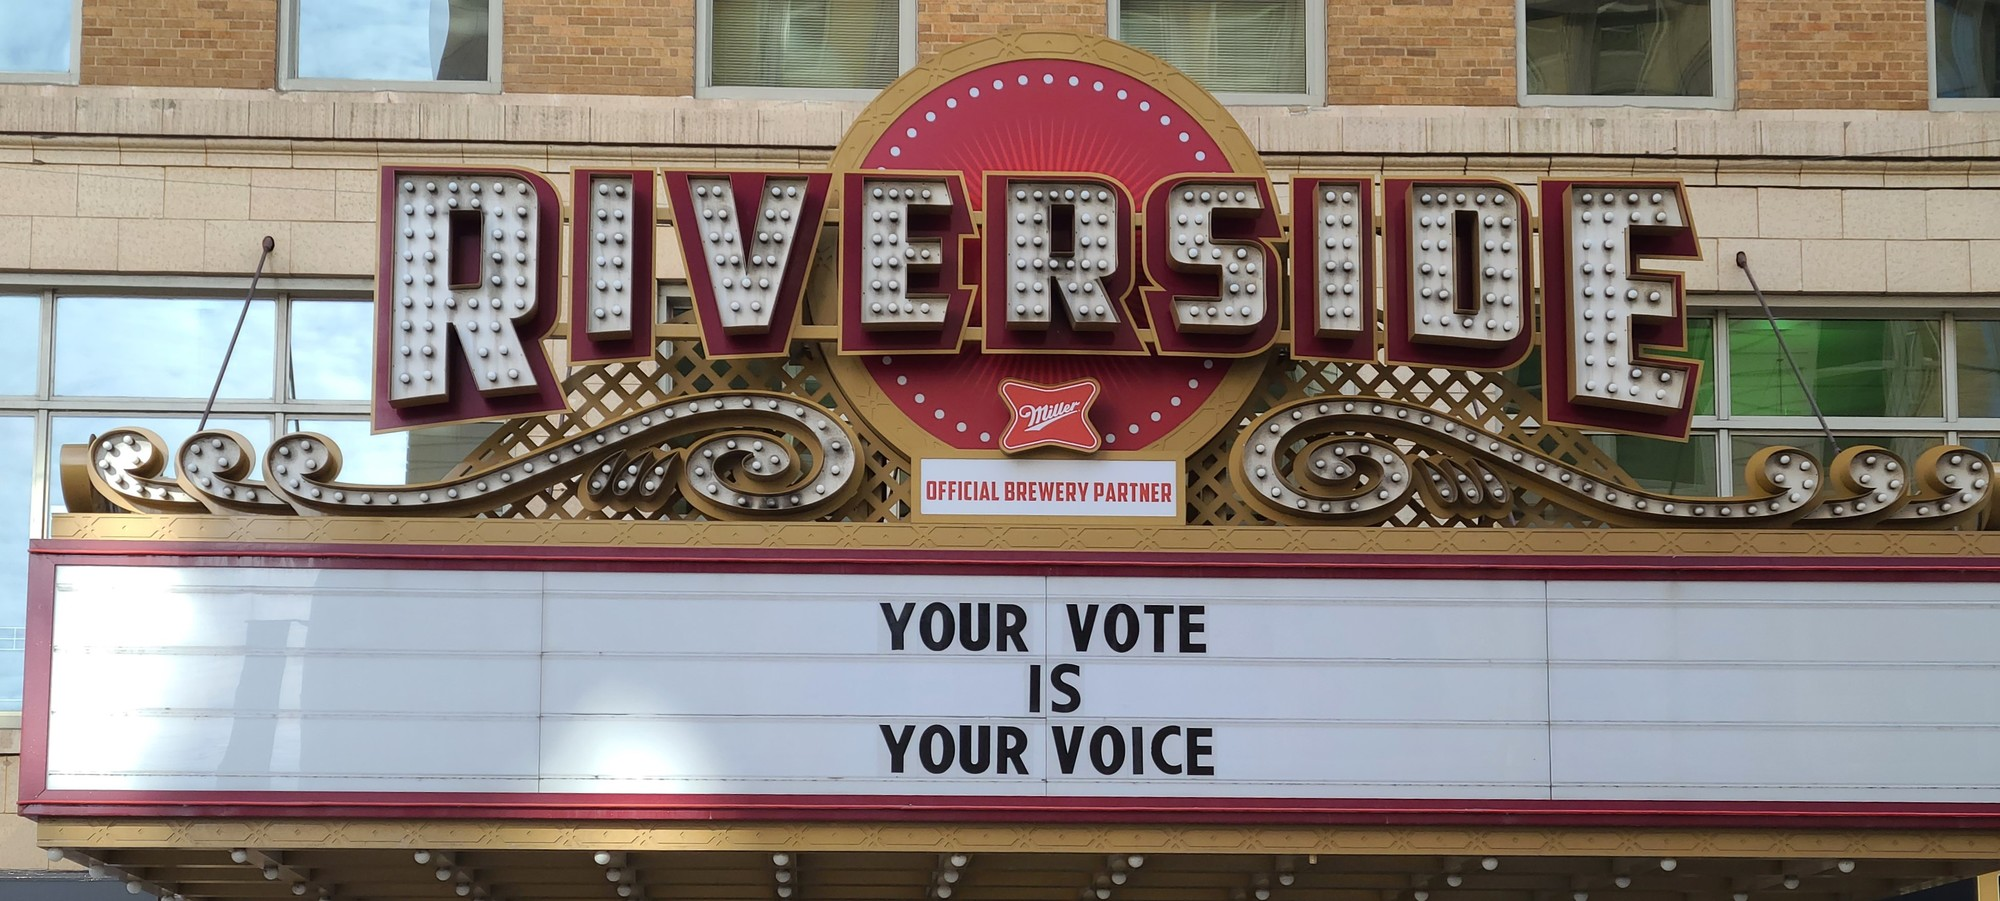 Your Vote Your Voice 2